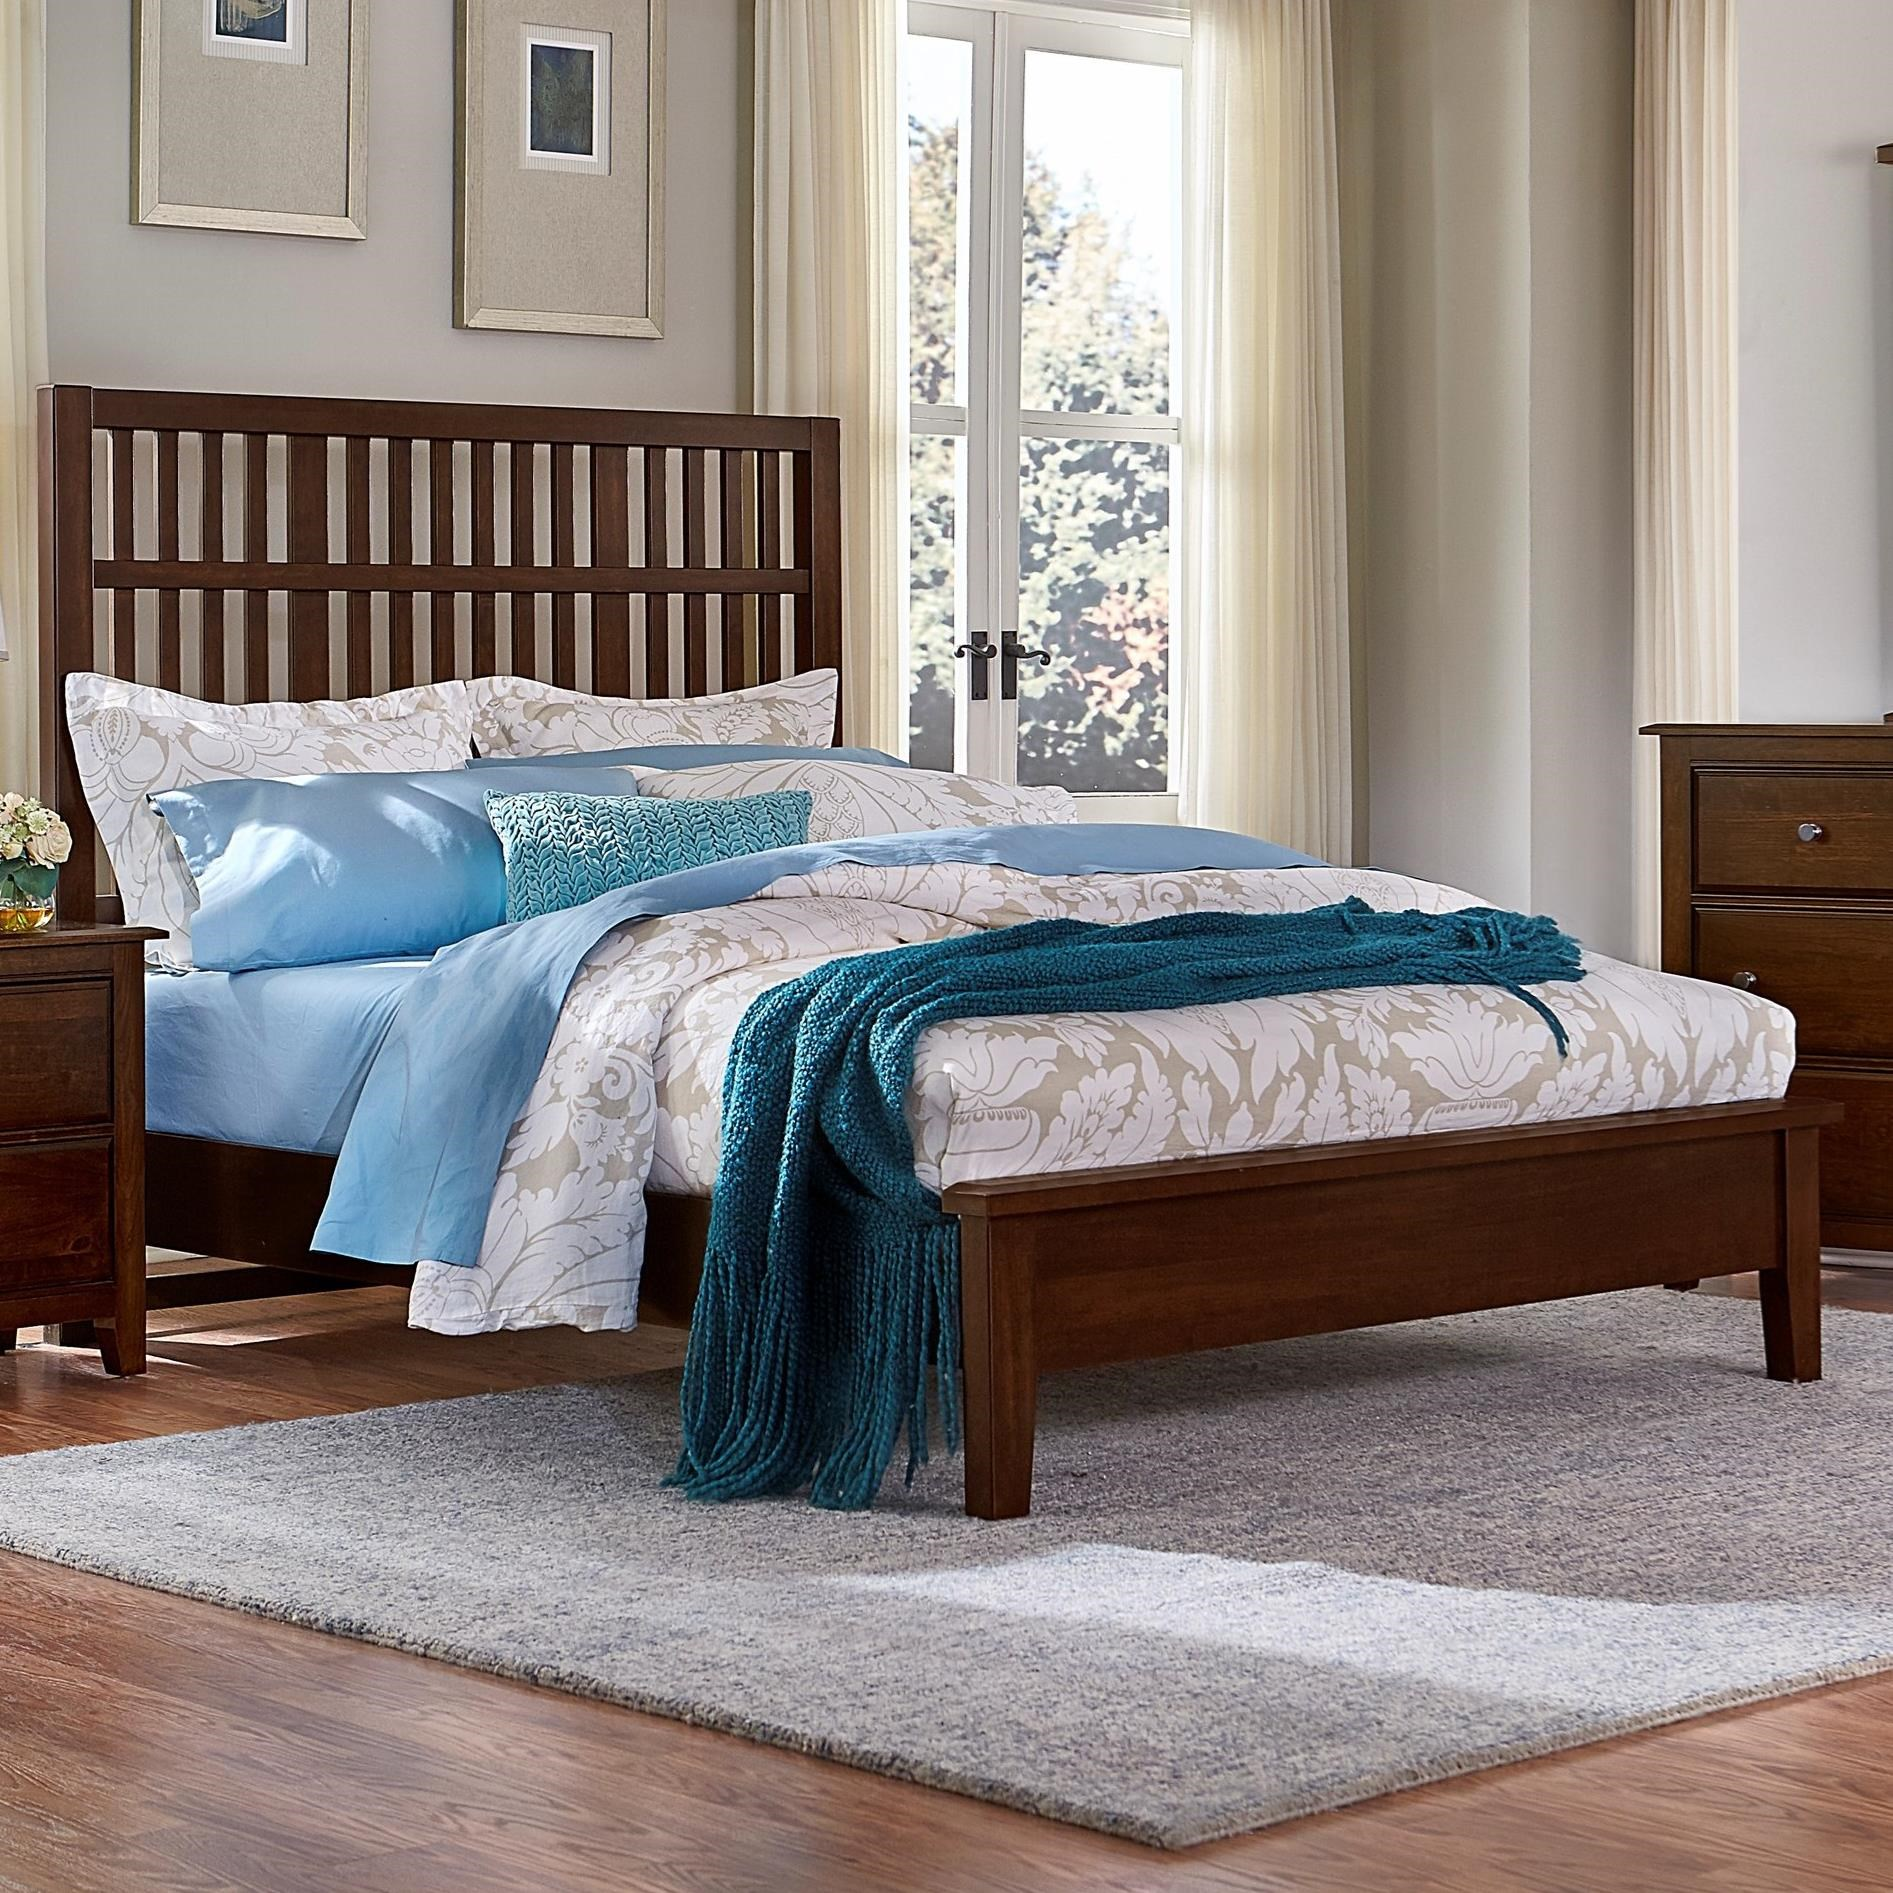 Artisan & Post Artisan Choices Queen Craftsman Slat Bed w/ Low Ftbd - Item Number: 104-558+755+922